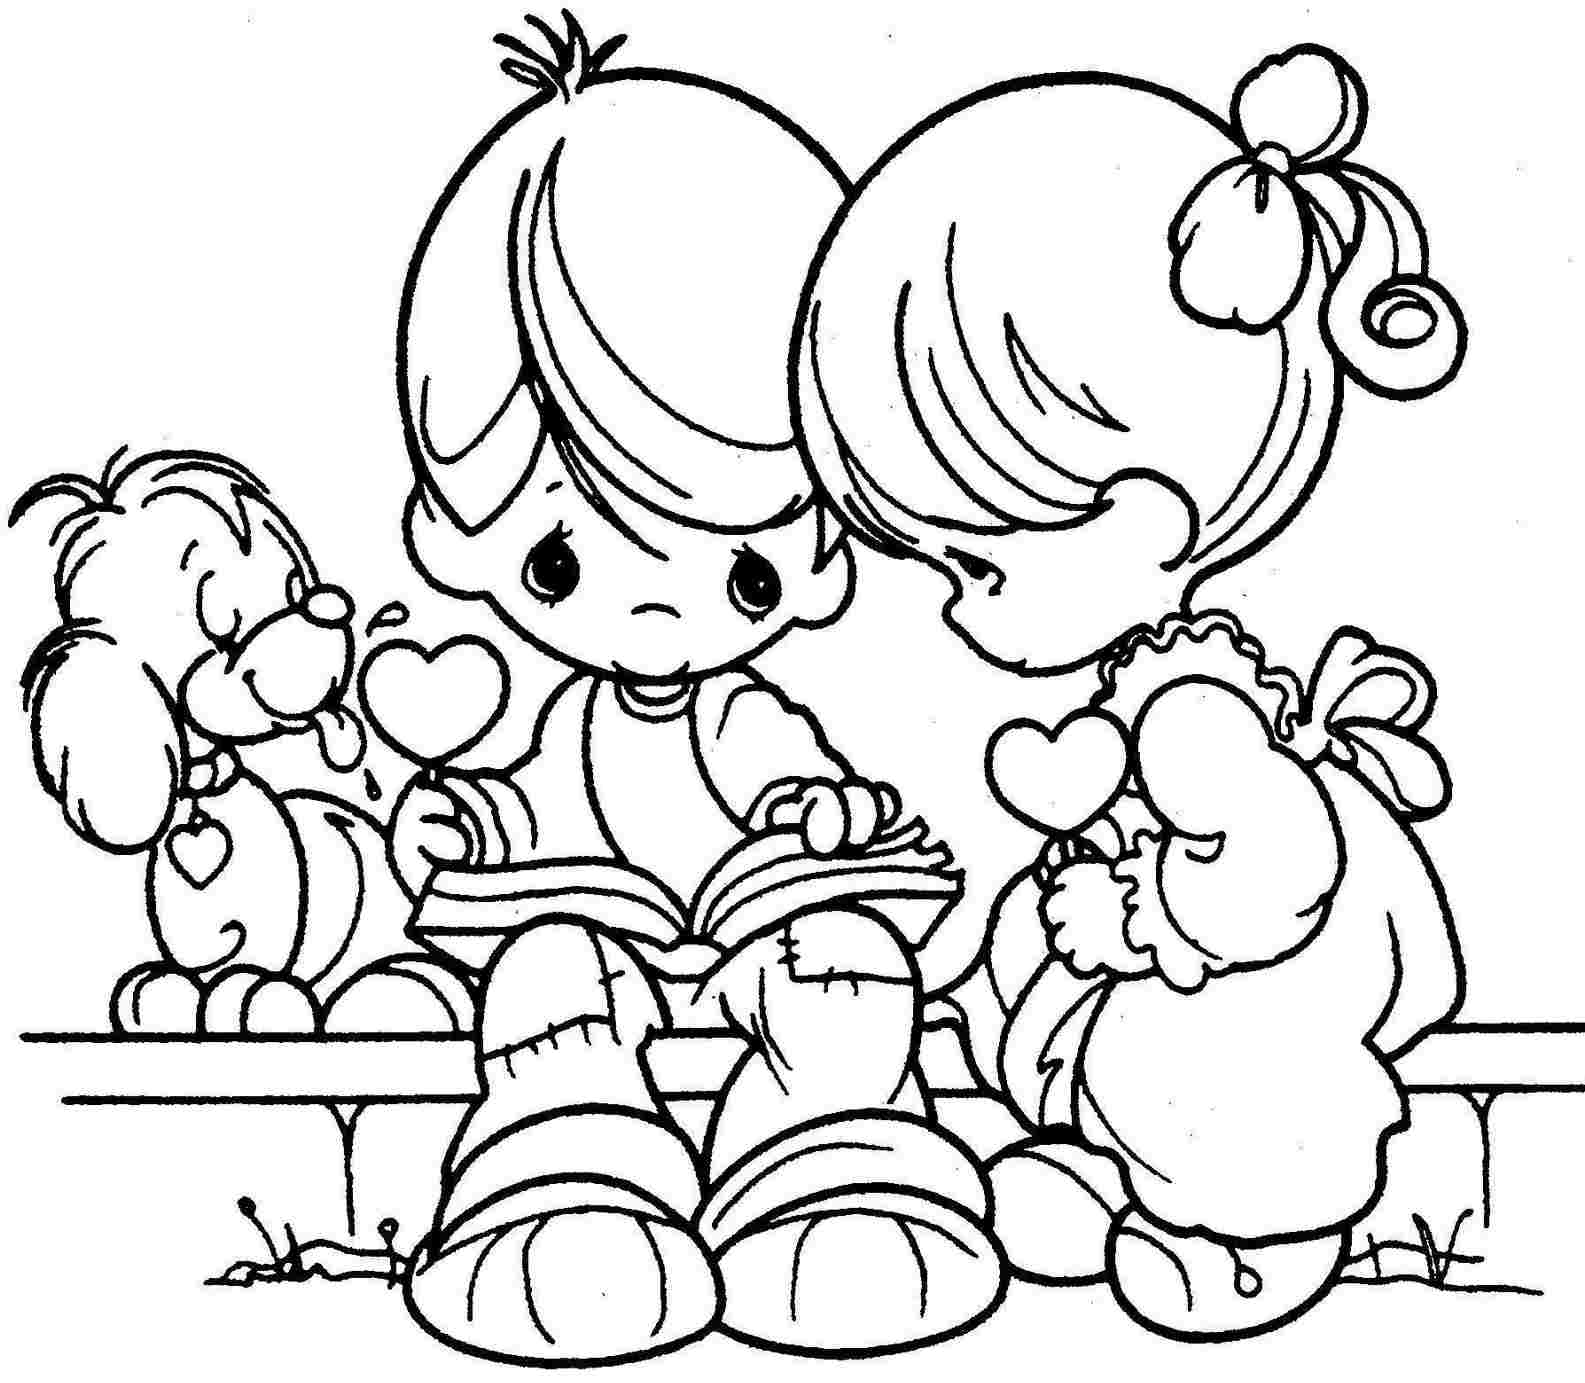 kids coloring pages valentines - photo#20